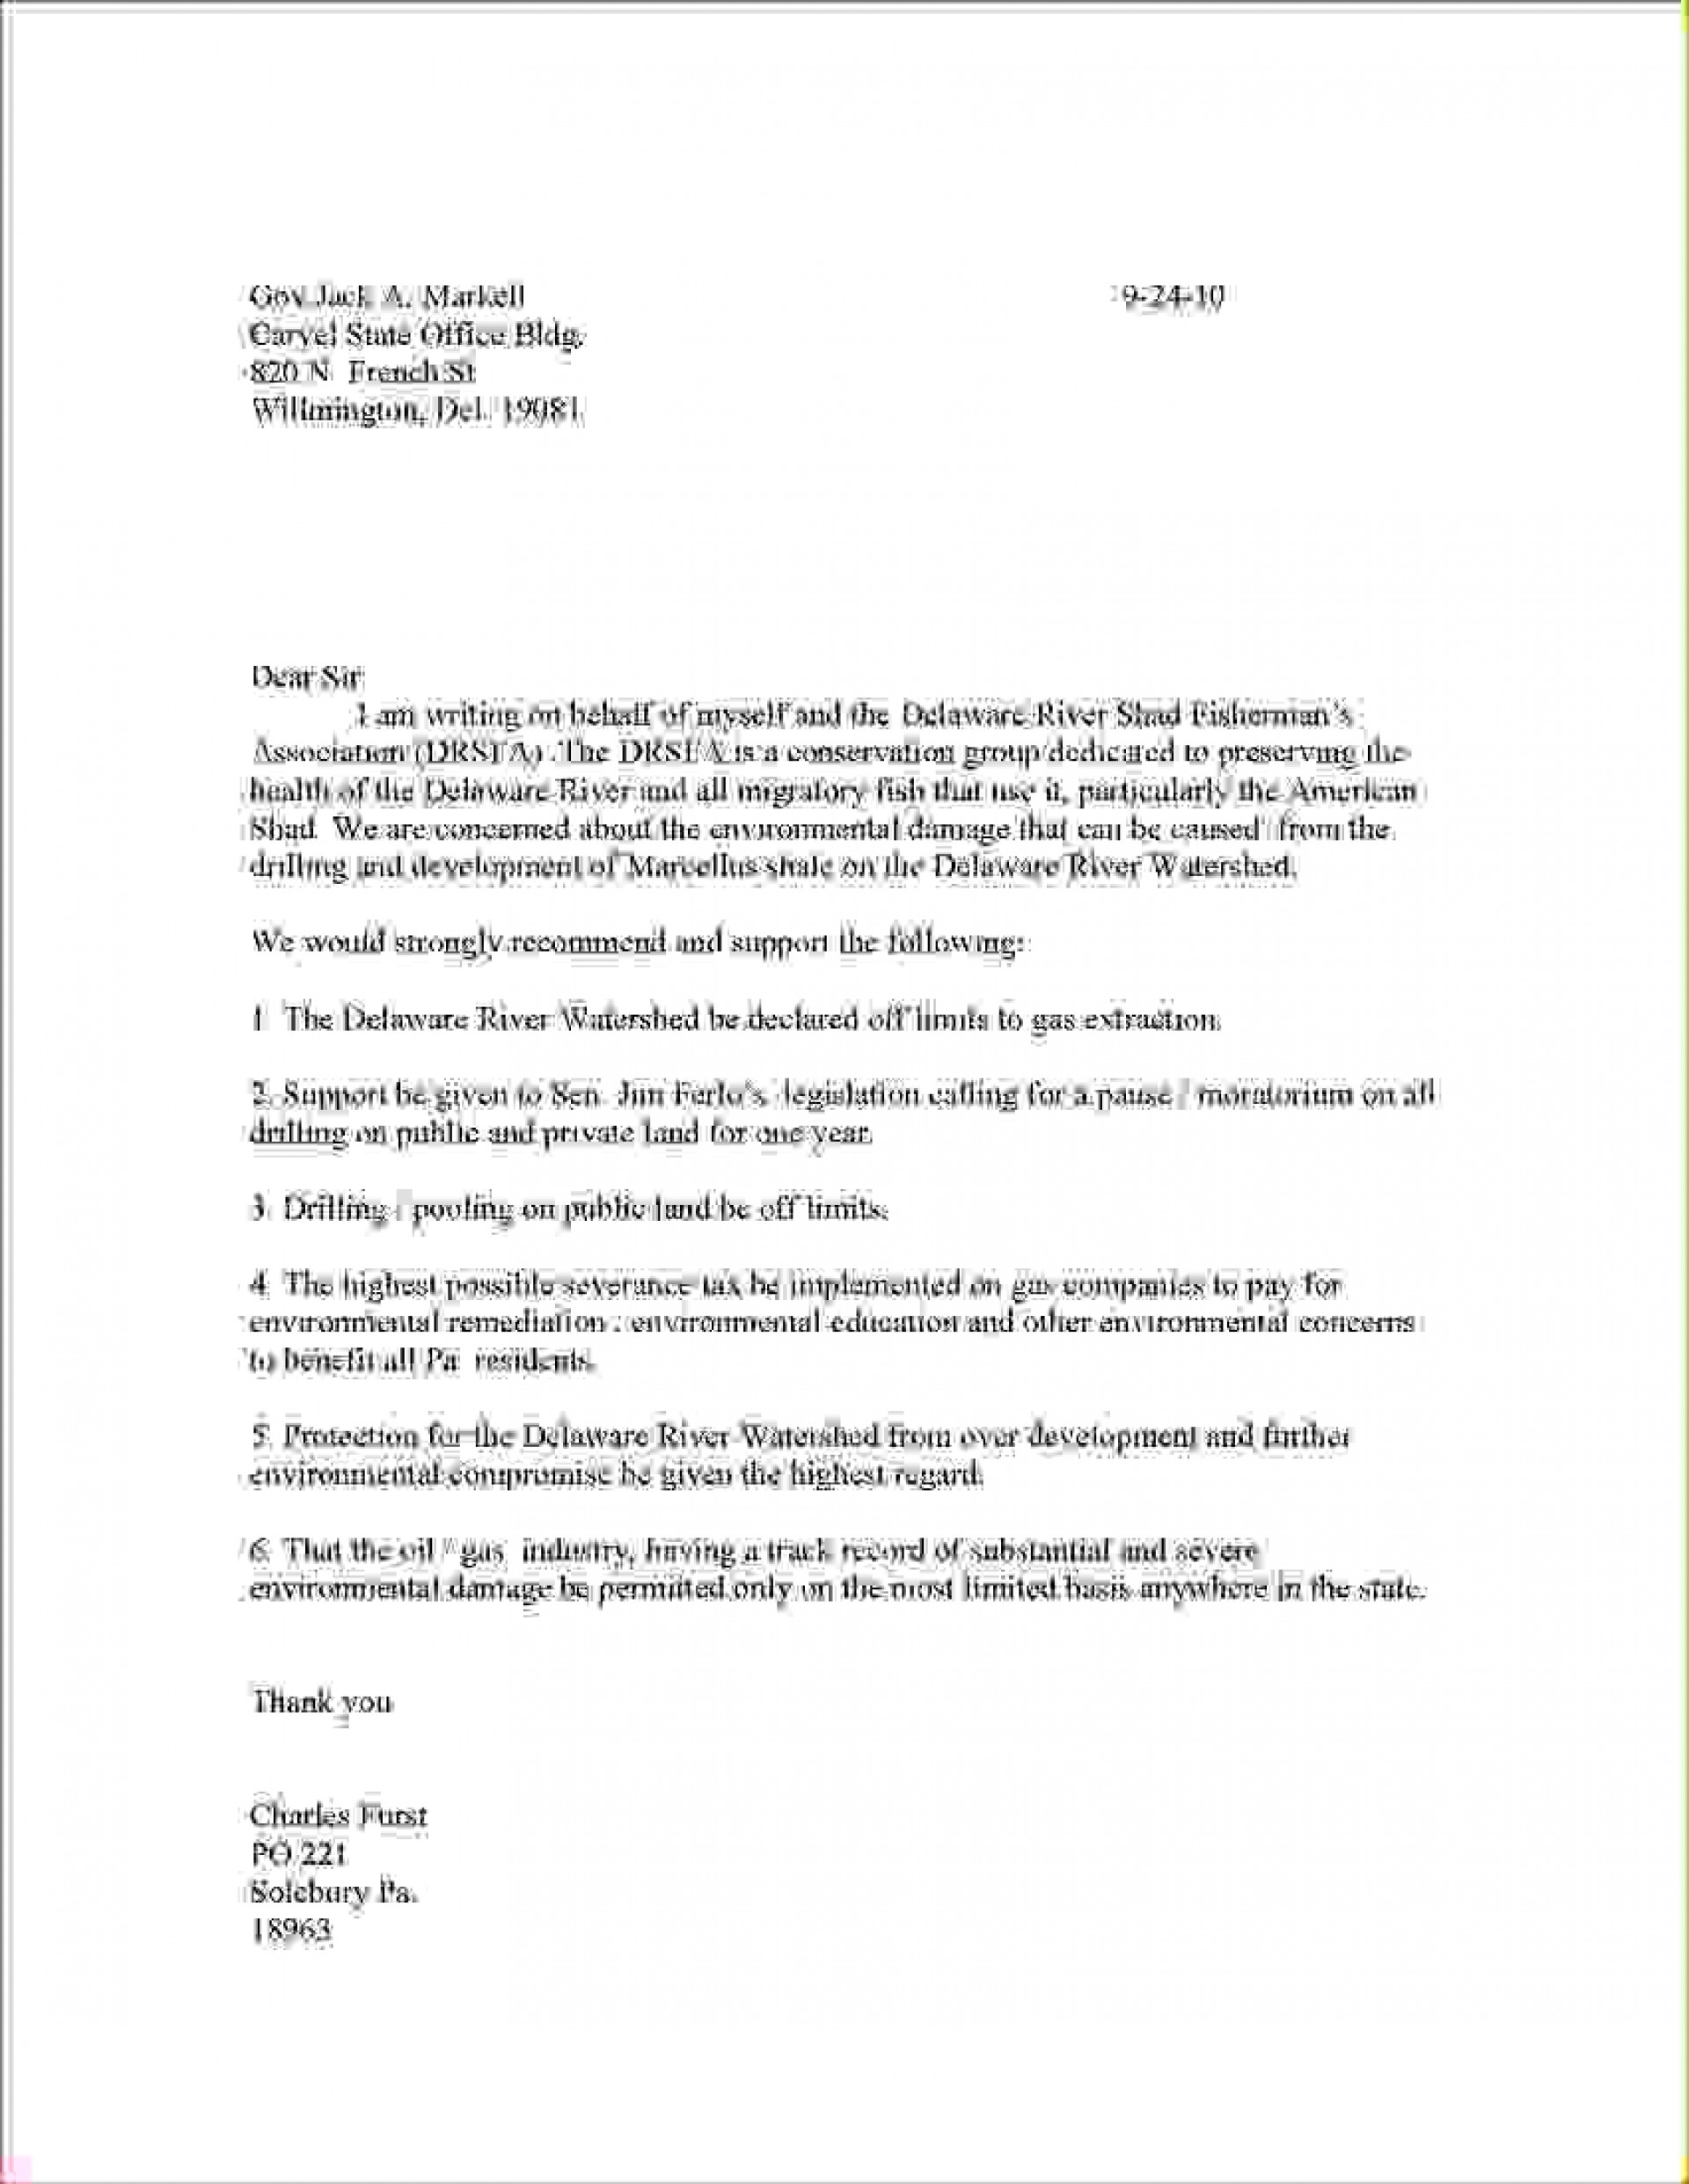 018 Essay Example How To Introduce Yourself In Letter Gov20markell Page 1 Jpg Sample About Myself Exceptional Introduction For Job 1920